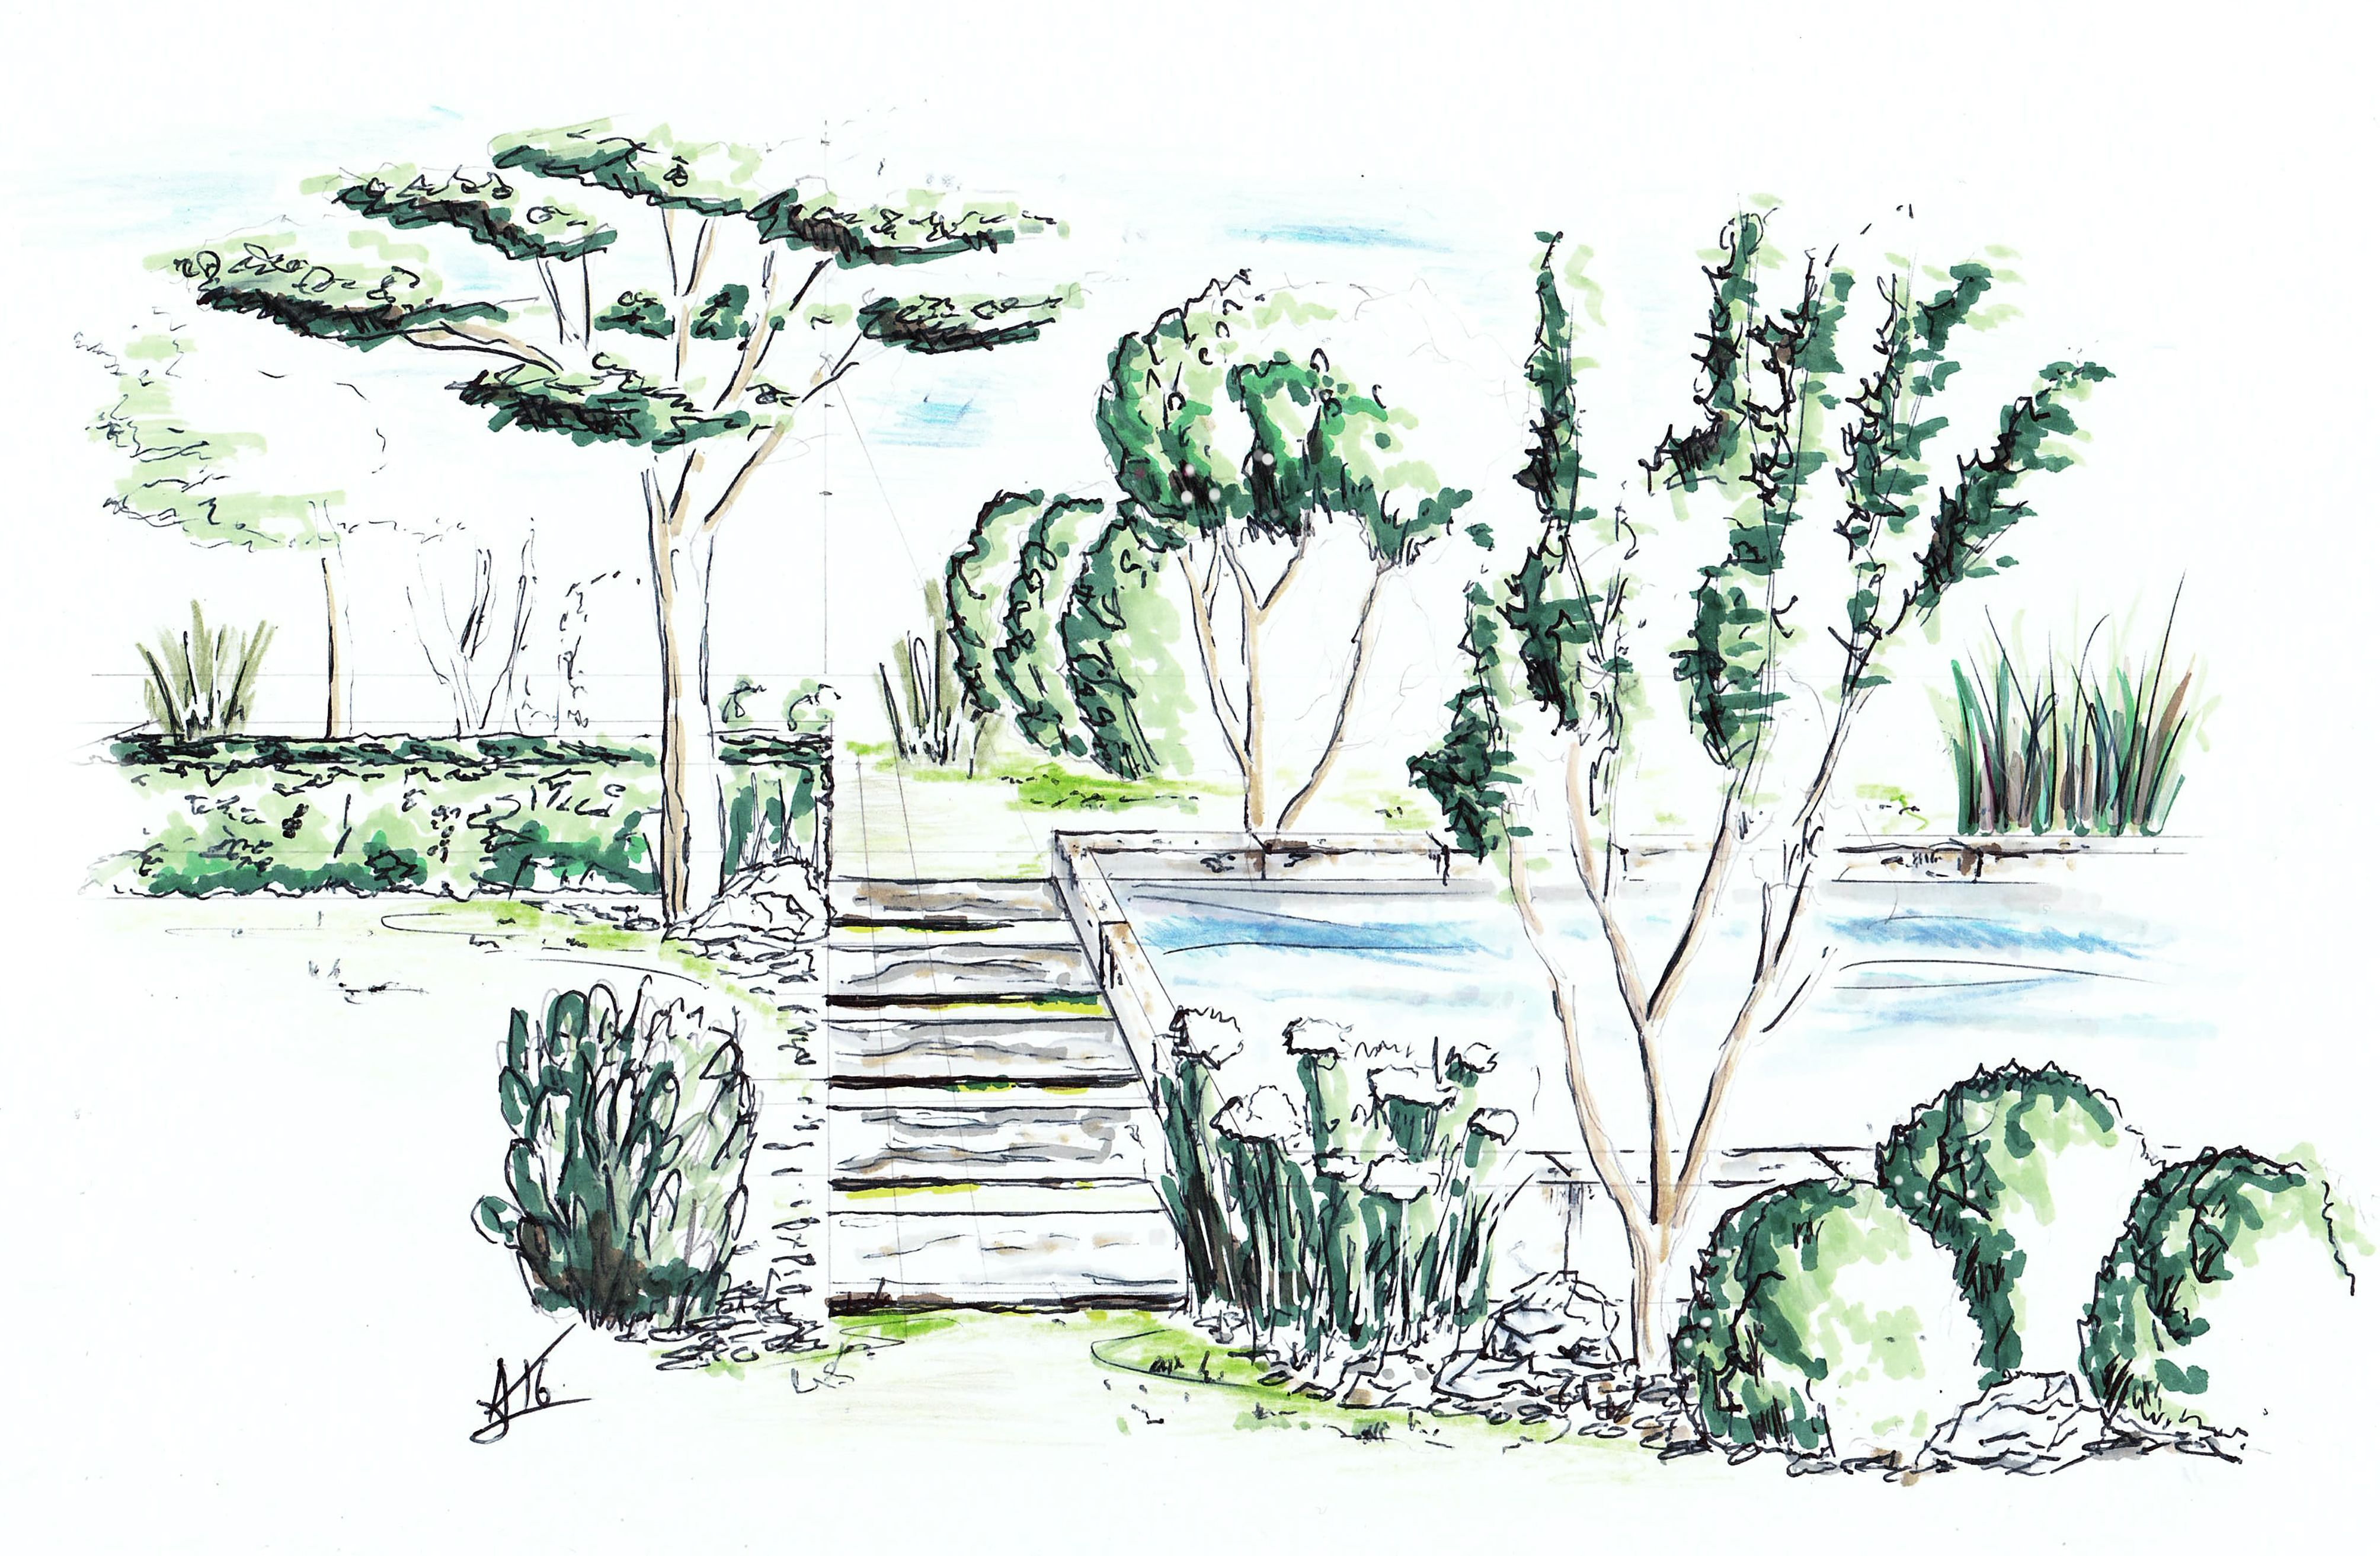 Dessin Perspective Croquis Paysage Artiste Alexandre Trubert